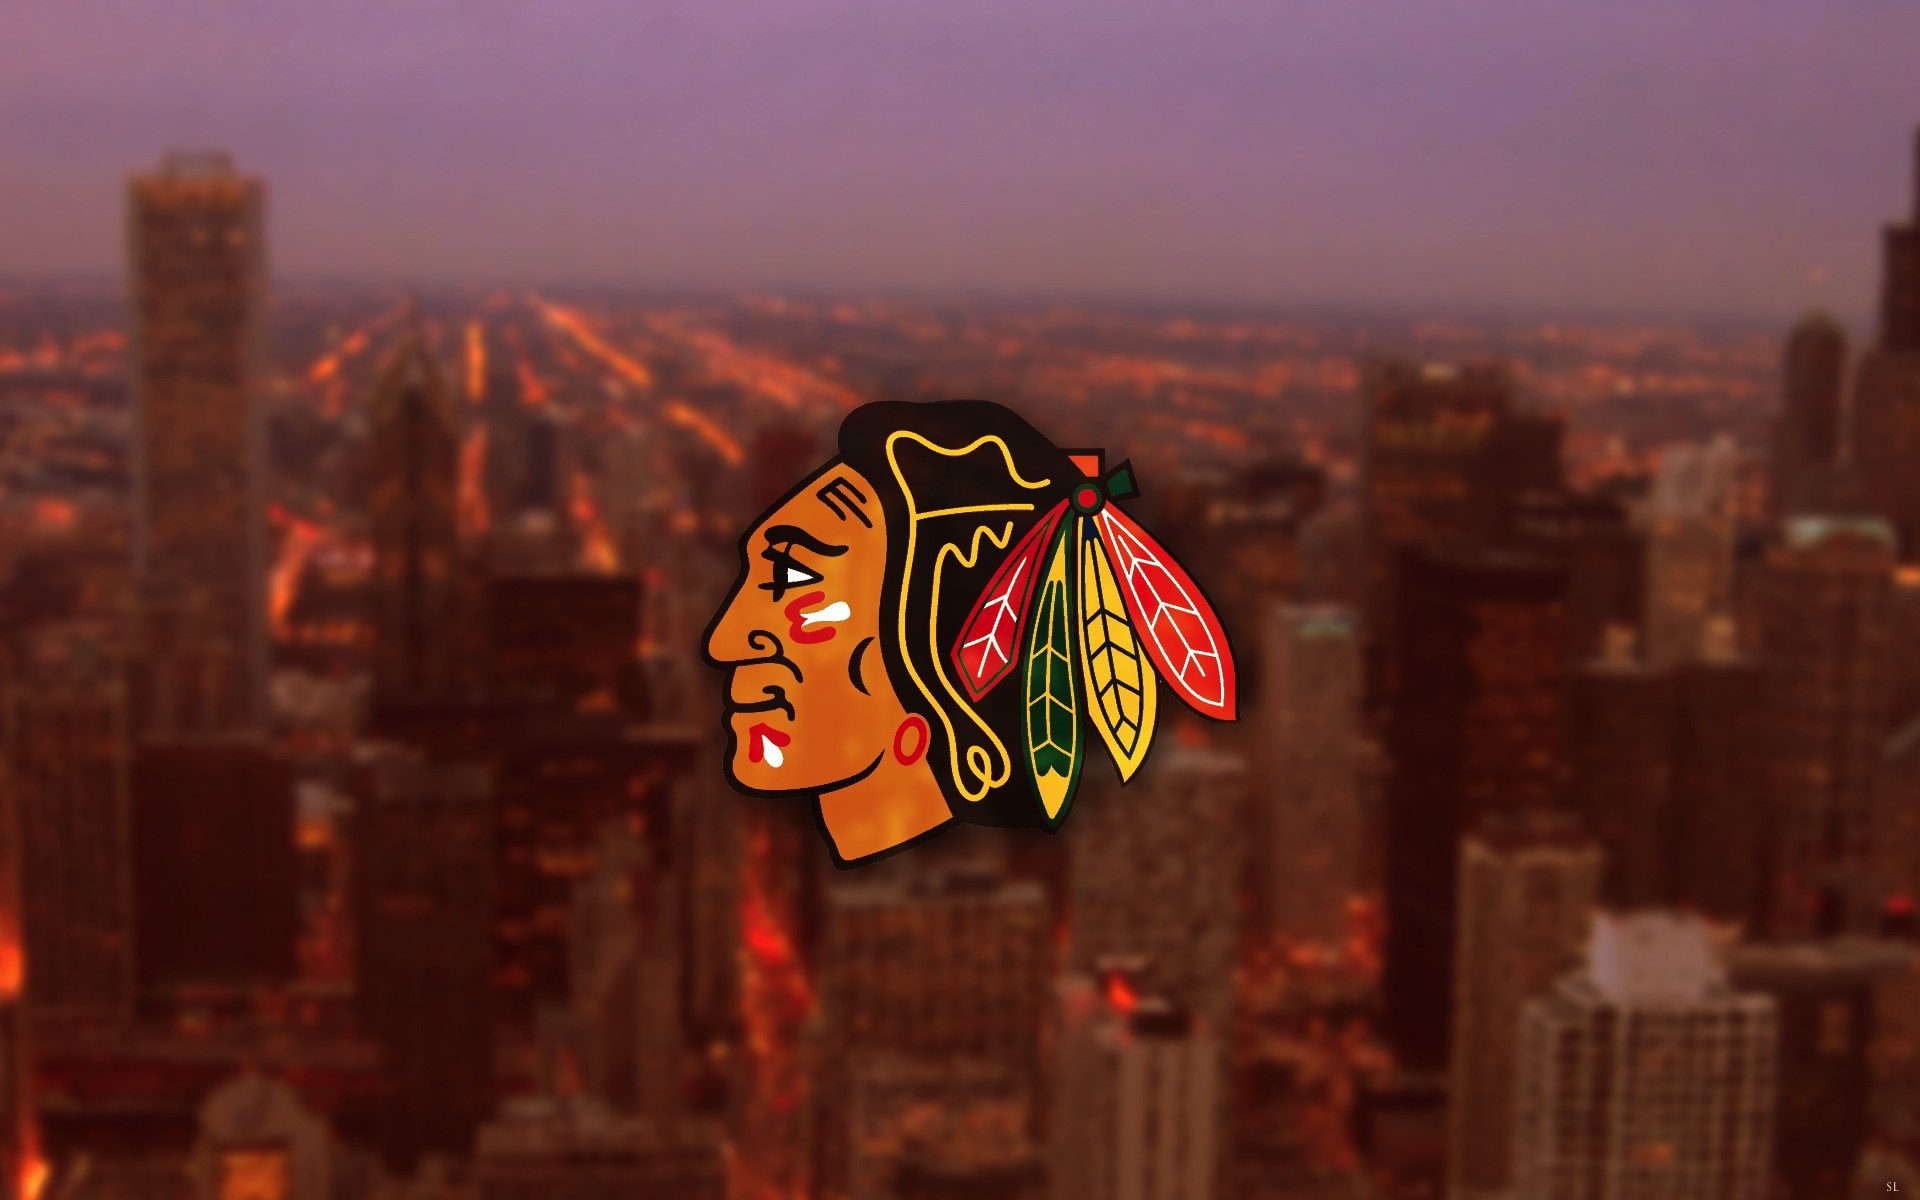 Blackhawks Wallpaper 1 Download Free Cool Full HD Wallpapers For